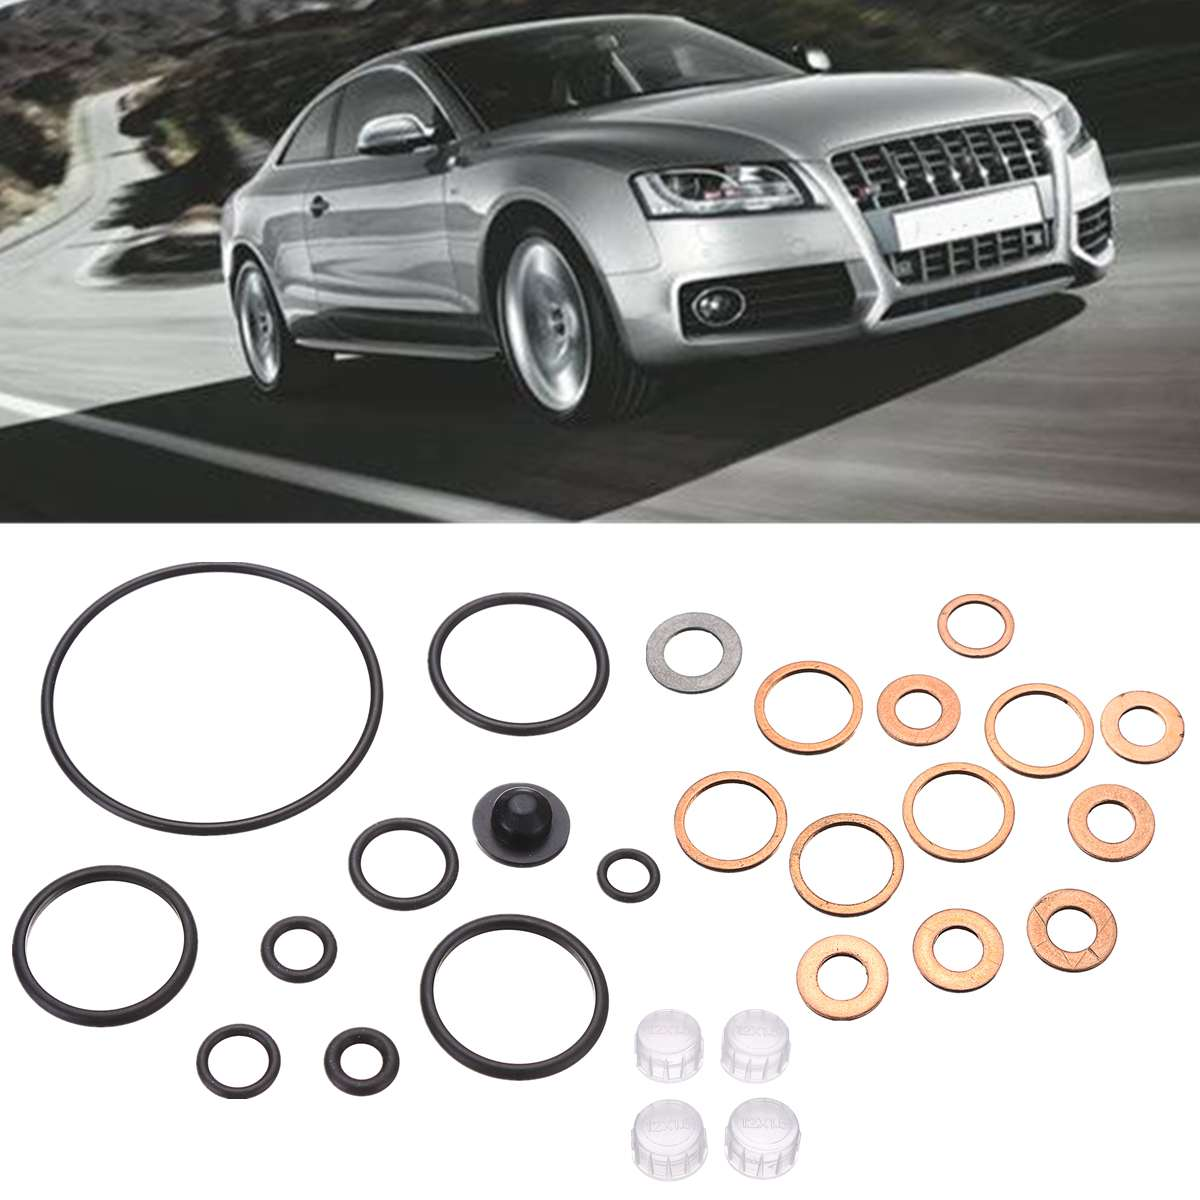 Plastic Black Oil Injector Seal Component Repair Kit for VP37 2467010003 for Audi 1.9 TDI / 2.5TDI for BMW tds for MercedesPlastic Black Oil Injector Seal Component Repair Kit for VP37 2467010003 for Audi 1.9 TDI / 2.5TDI for BMW tds for Mercedes